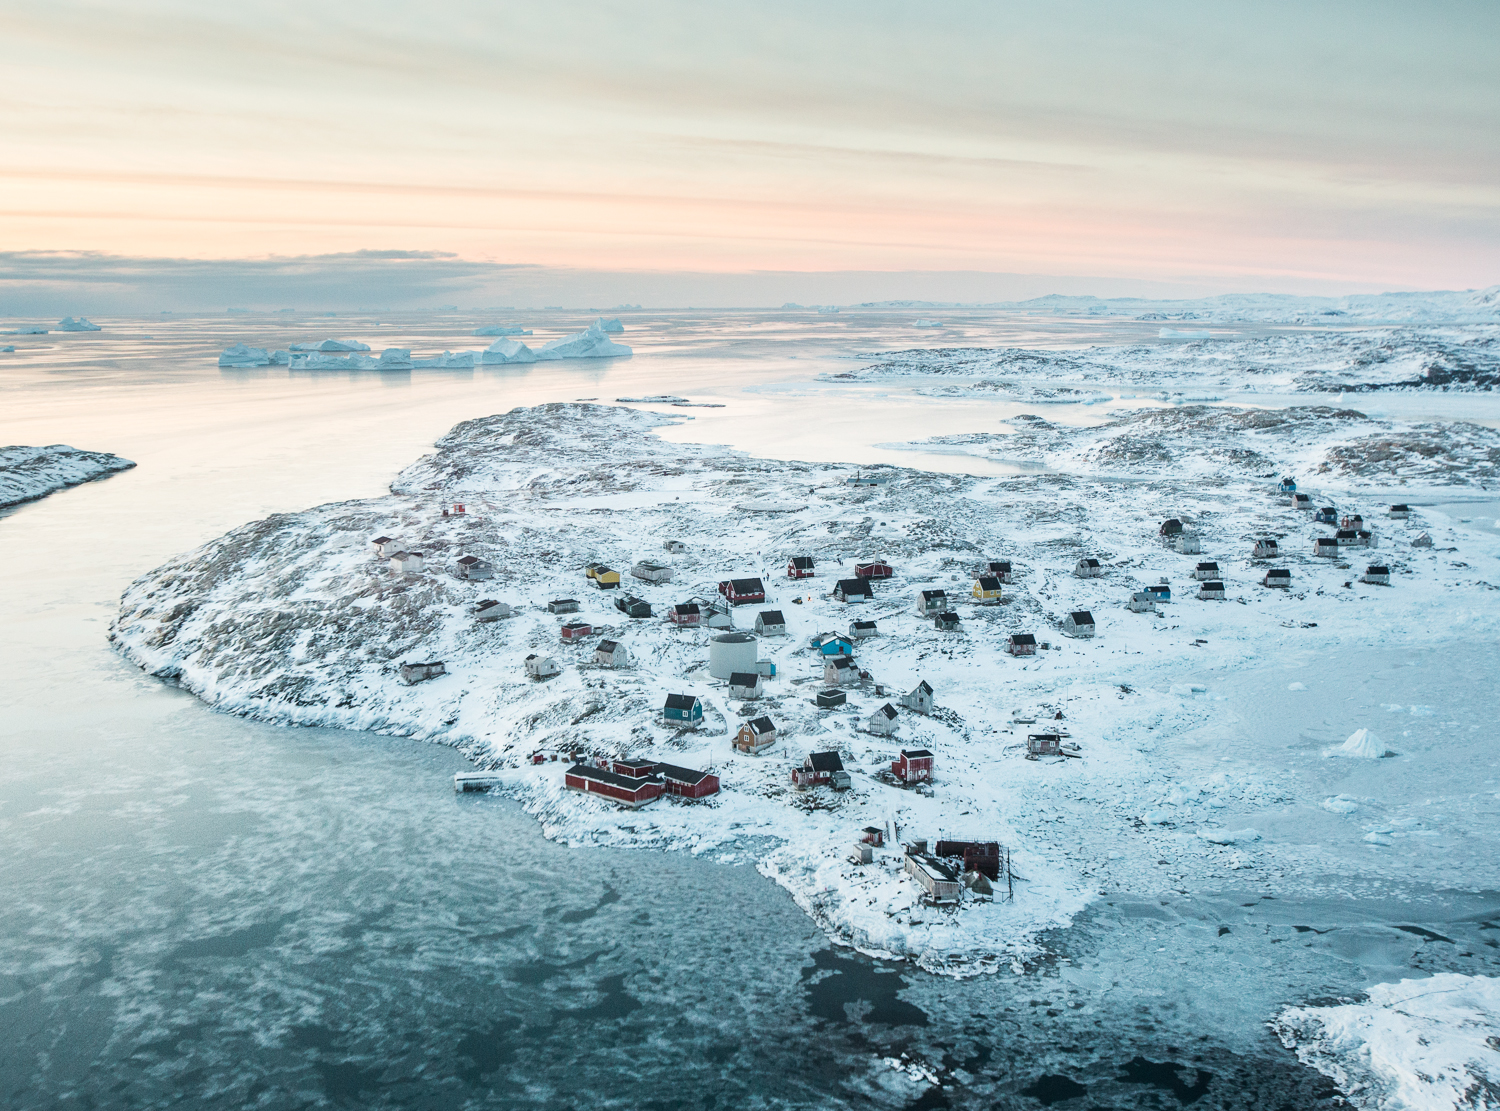 A view from the helicopter while flying over the pack ice from Tasiilaq to Isortoq—population 64—in eastern Greenland.